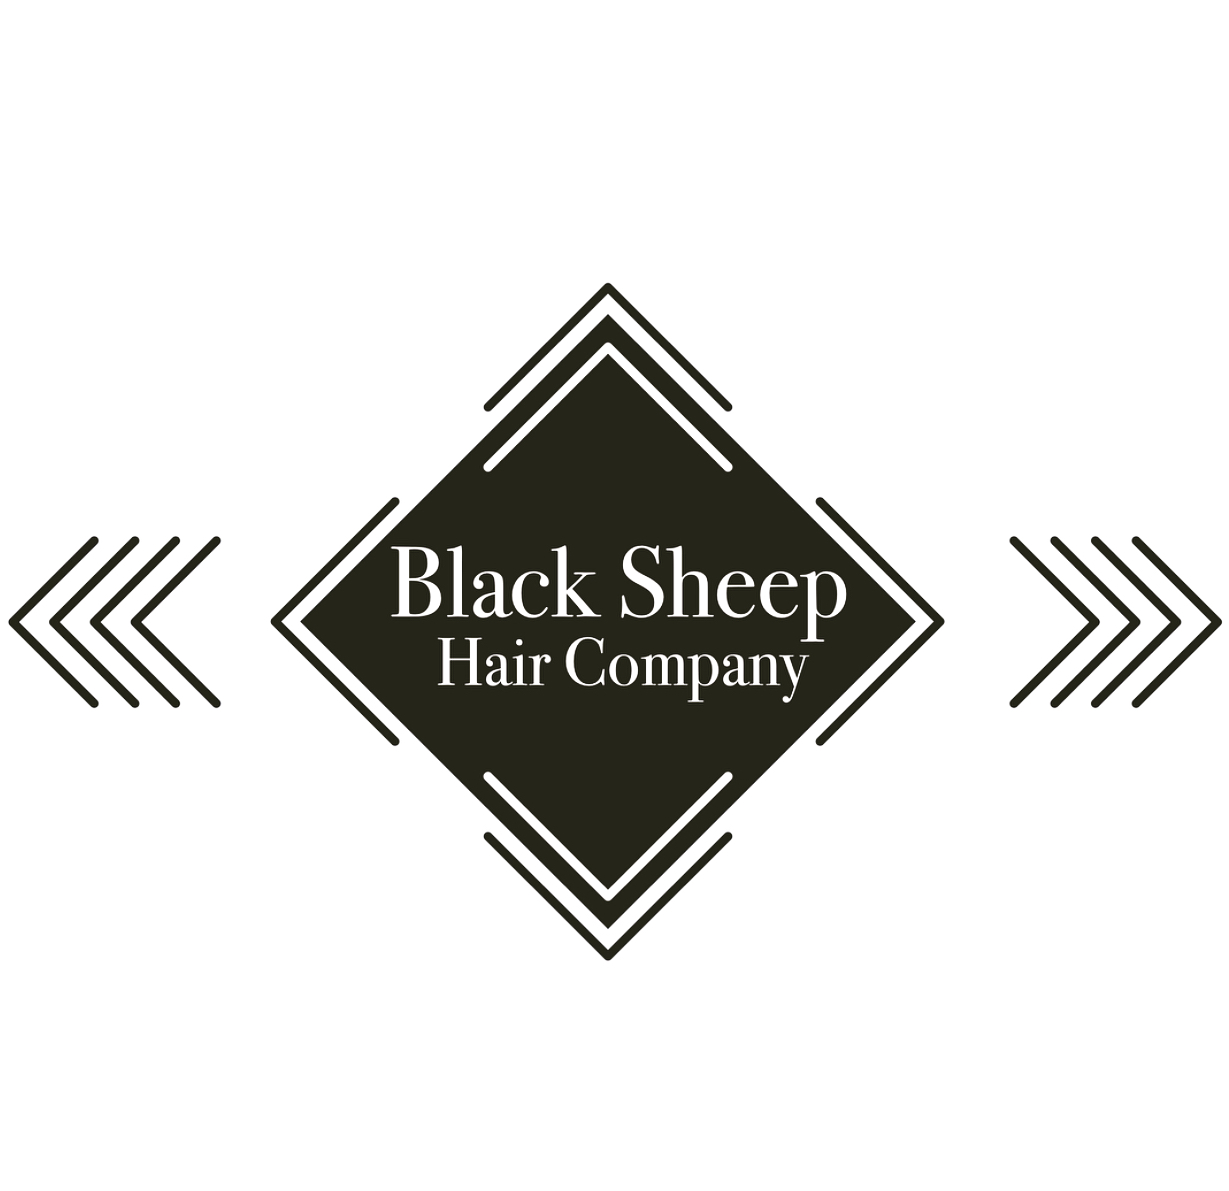 Black Sheep Hair Company